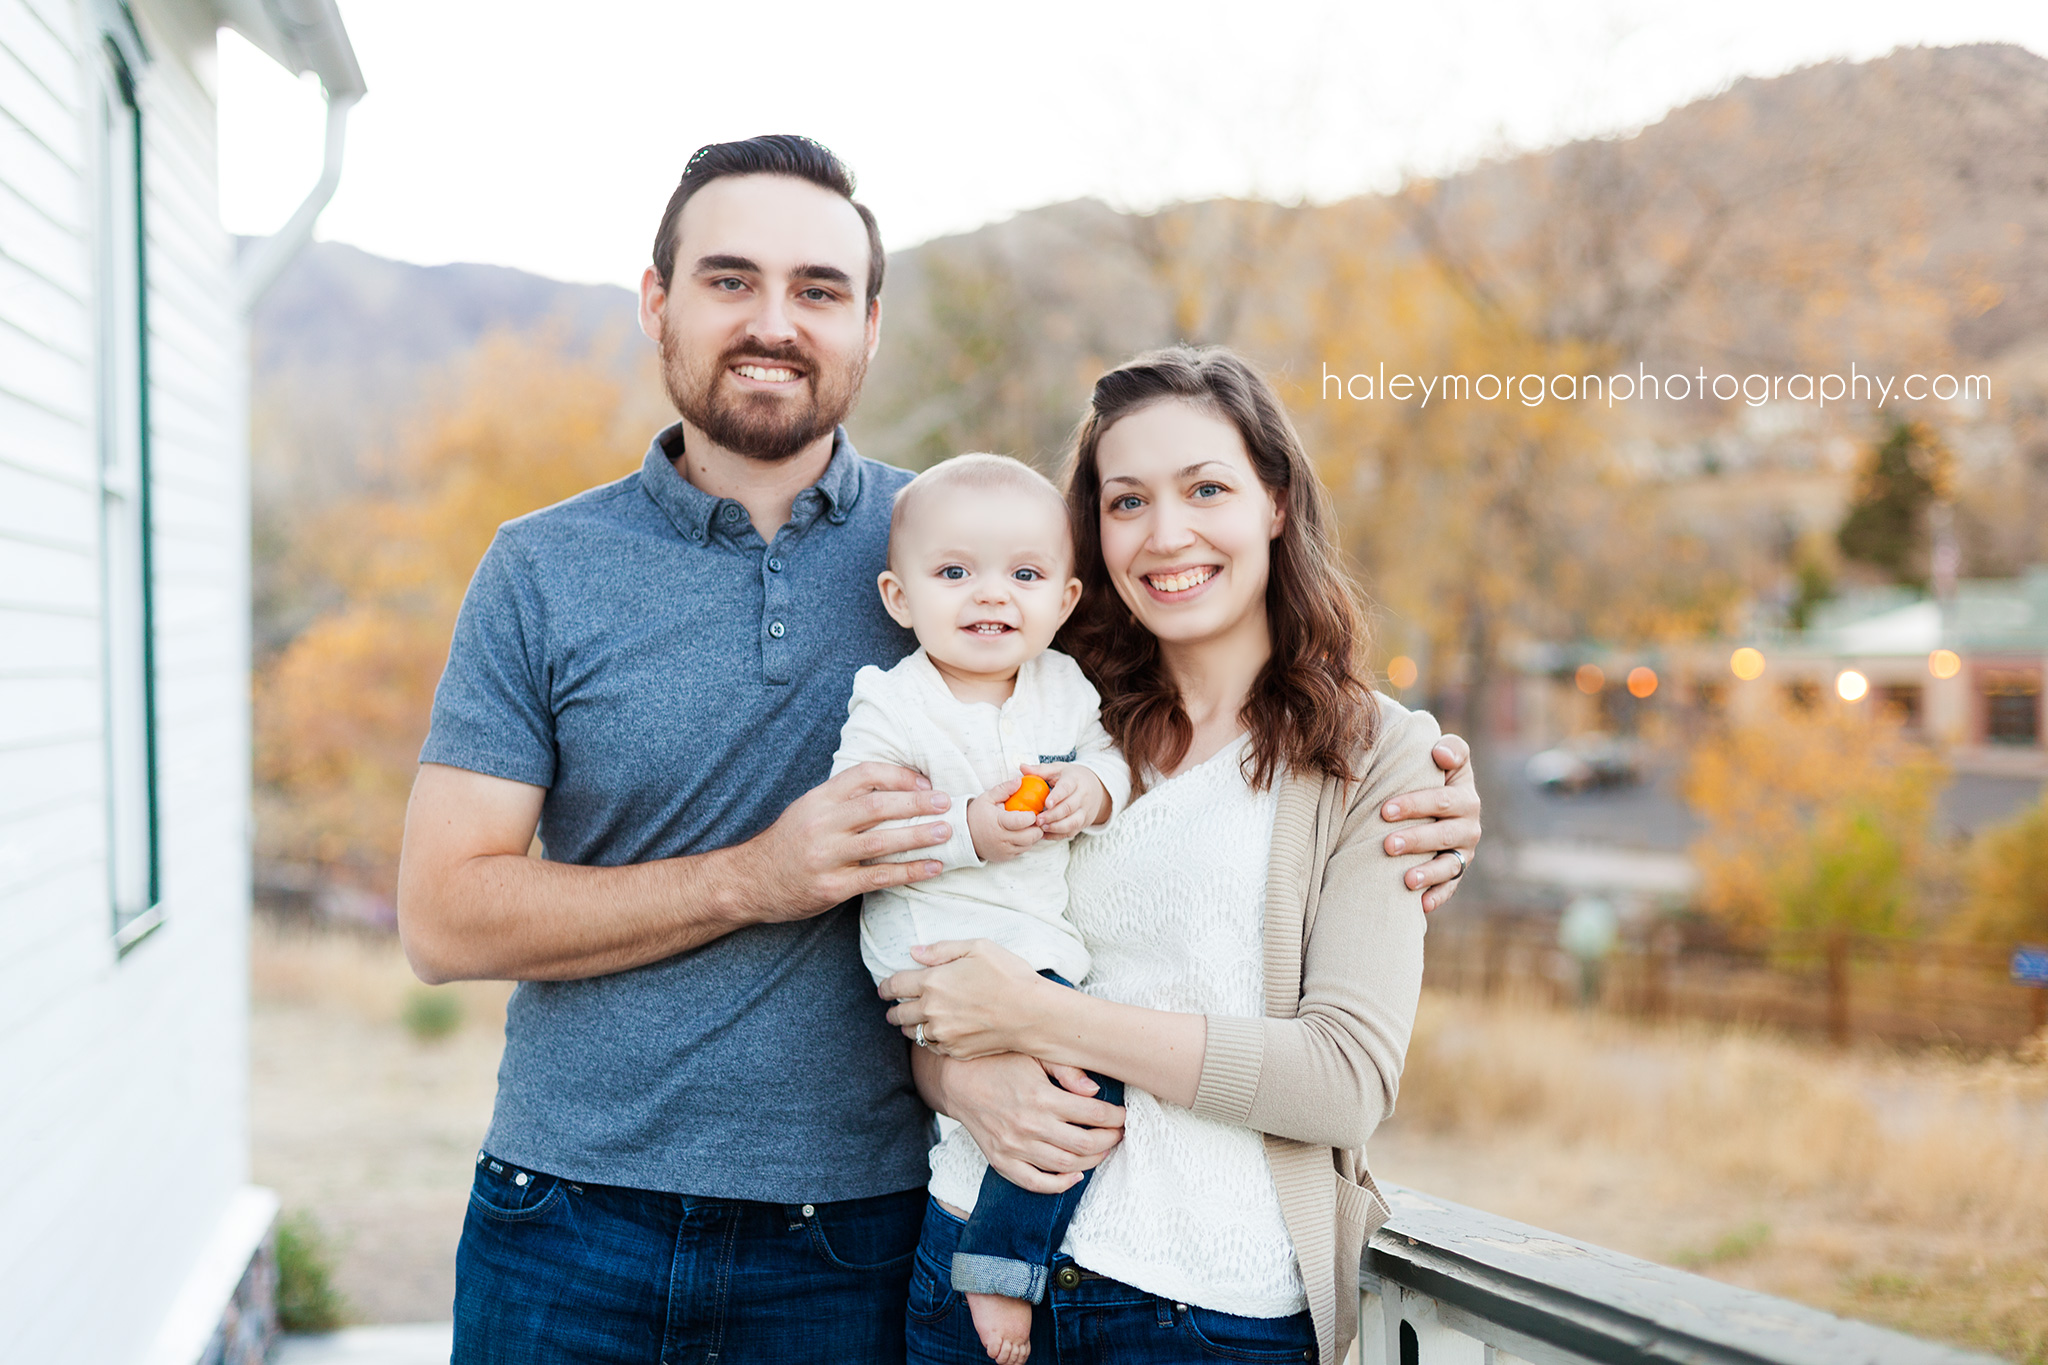 Golden Family Photographer, Denver Family Photographer, Golden Photographer, Denver Photographer, Haley Morgan Photography, Clear Creek Trail, Clear Creek History Park